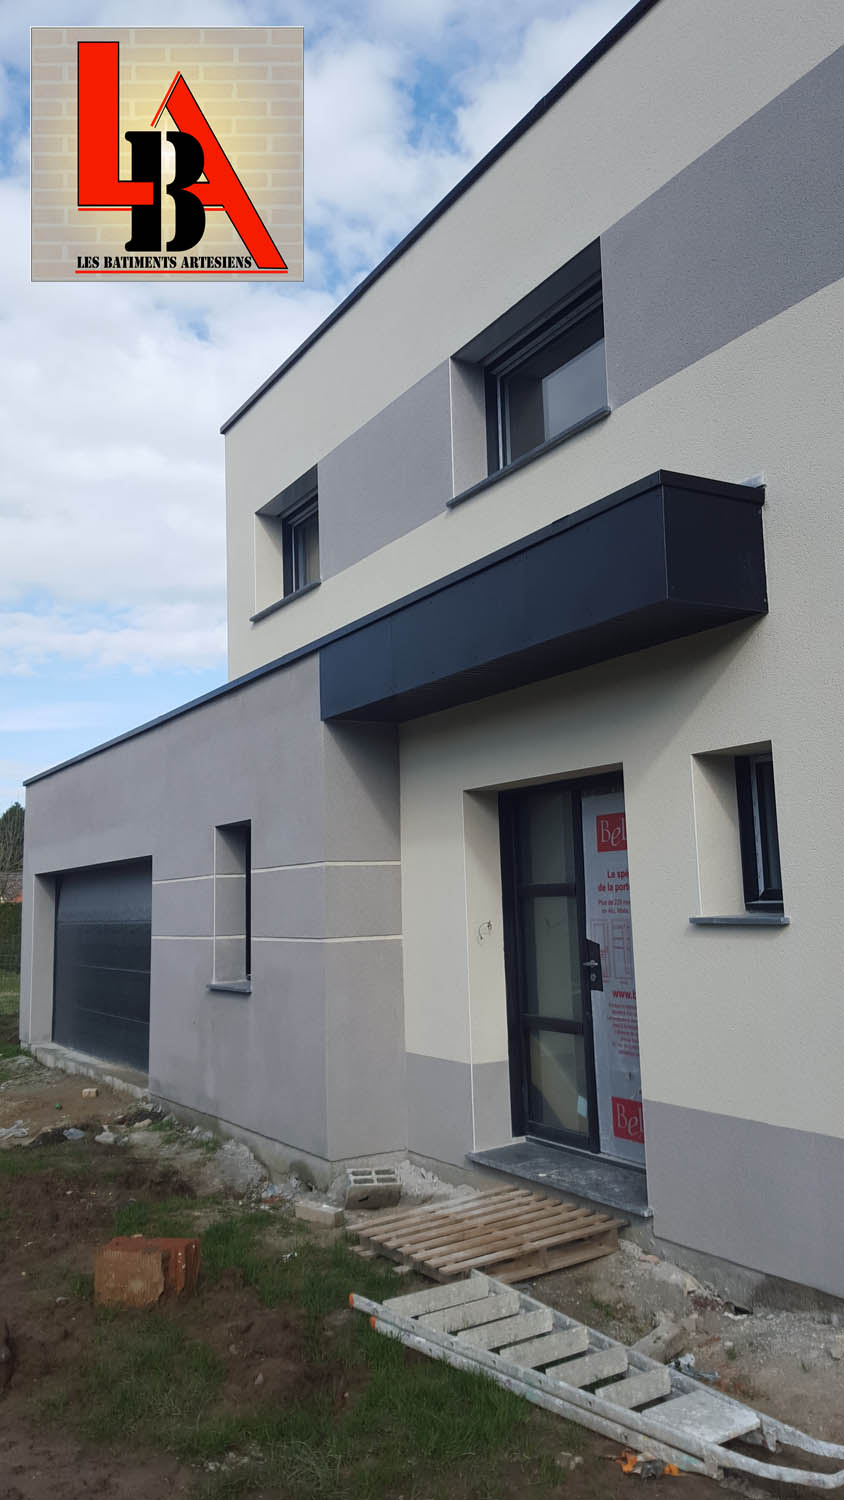 les batiments artesiens construction maison location maison secondaire porotherm tH+